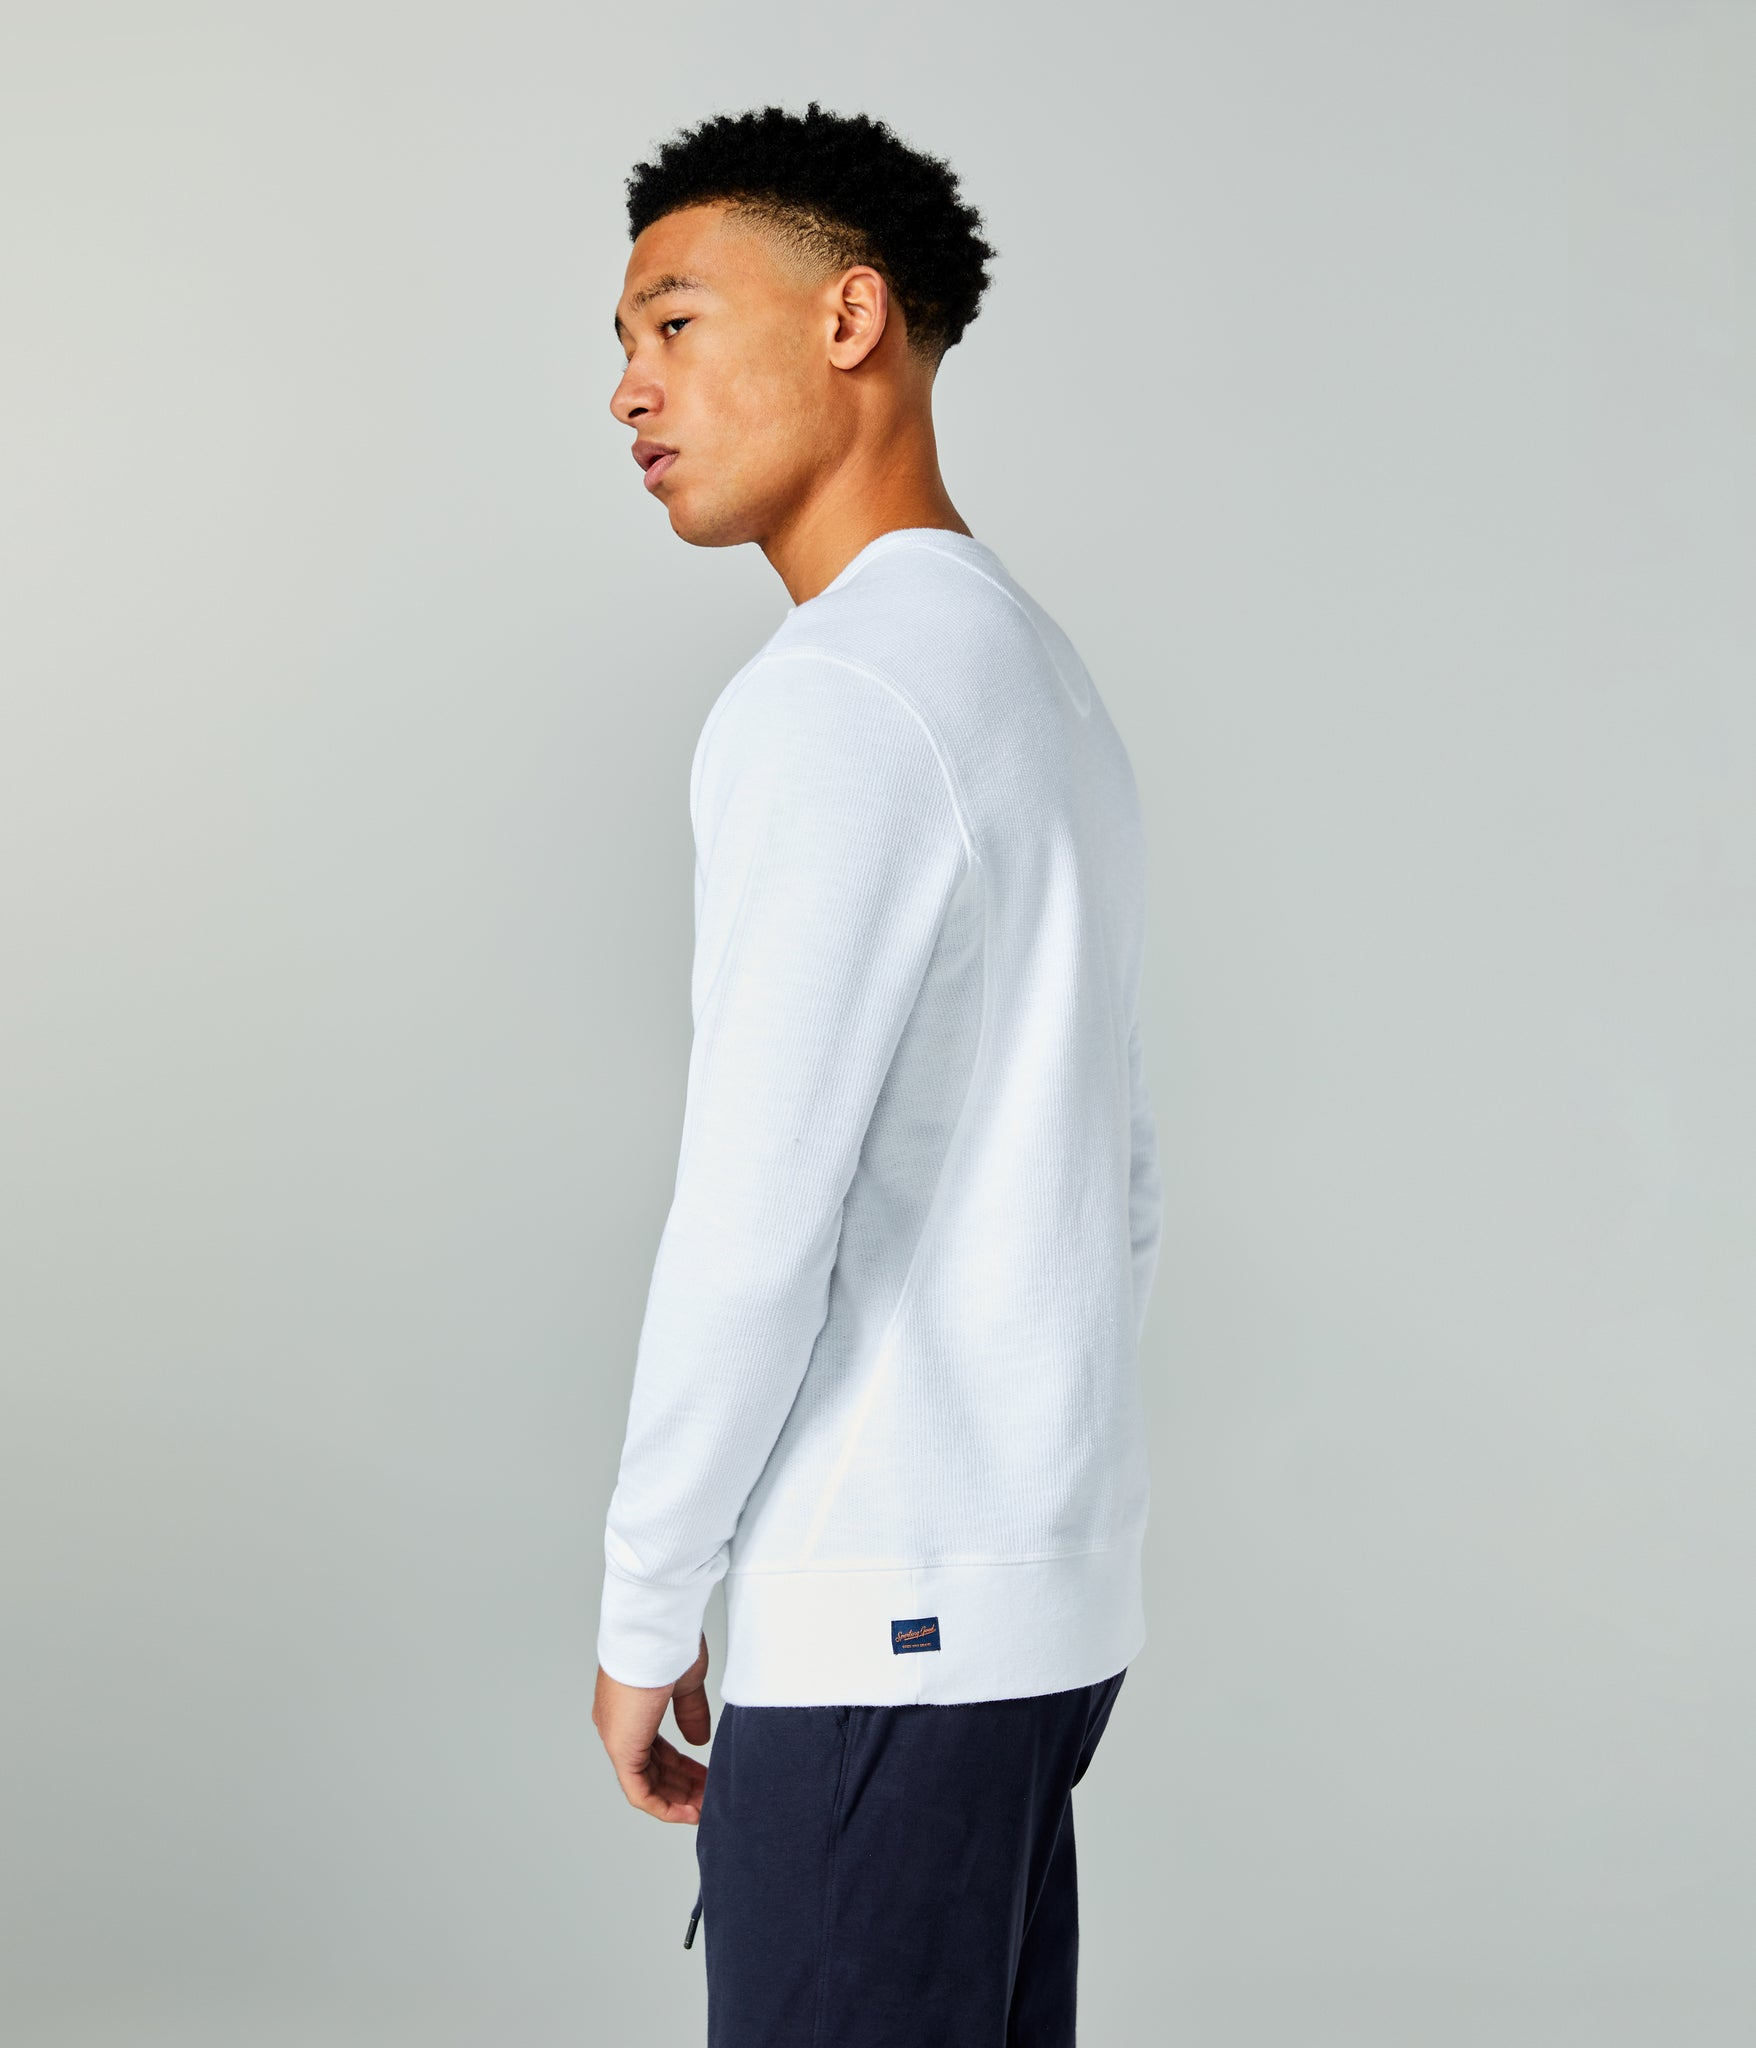 Victory V-Notch Sweatshirt - White